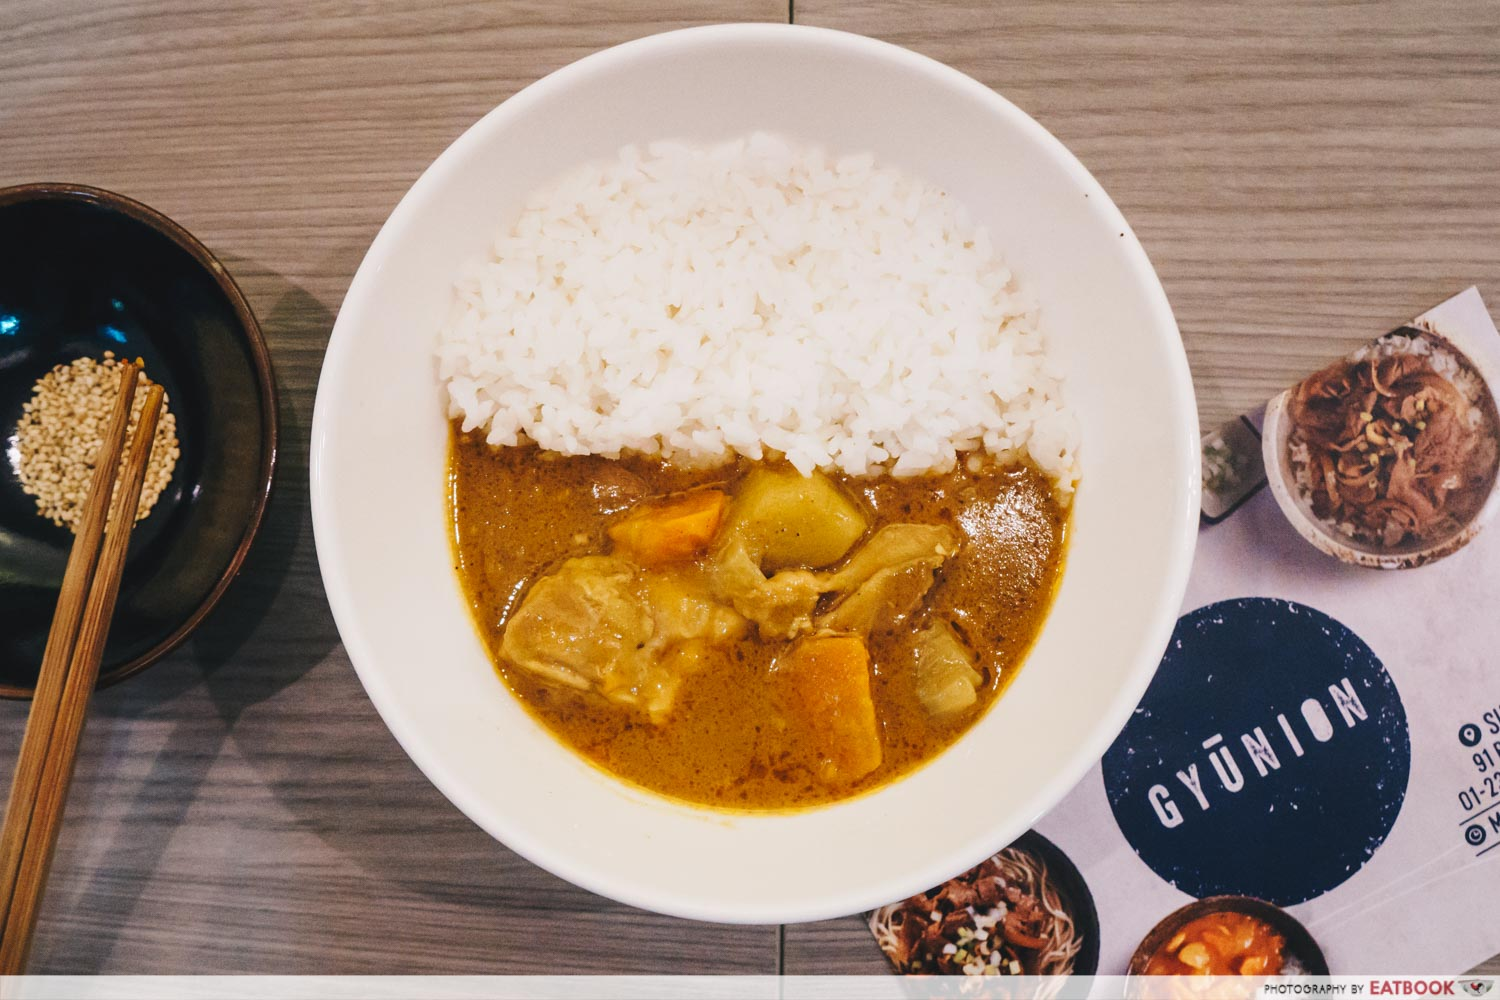 Gyunion - Curry Chicken Don